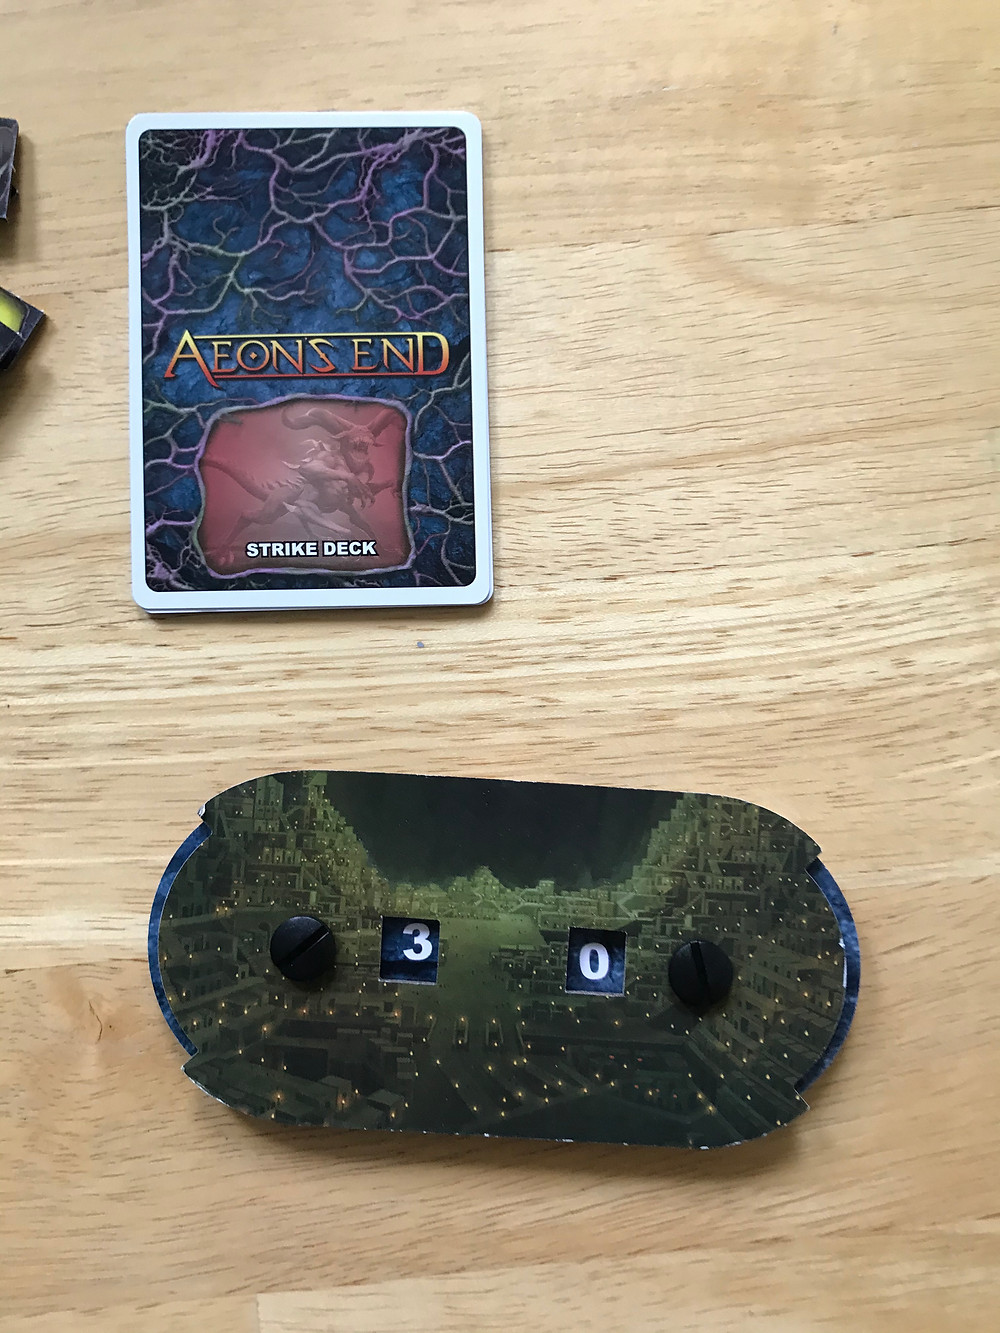 Aeon's End Rageborne strike deck and Gravehold life counter.